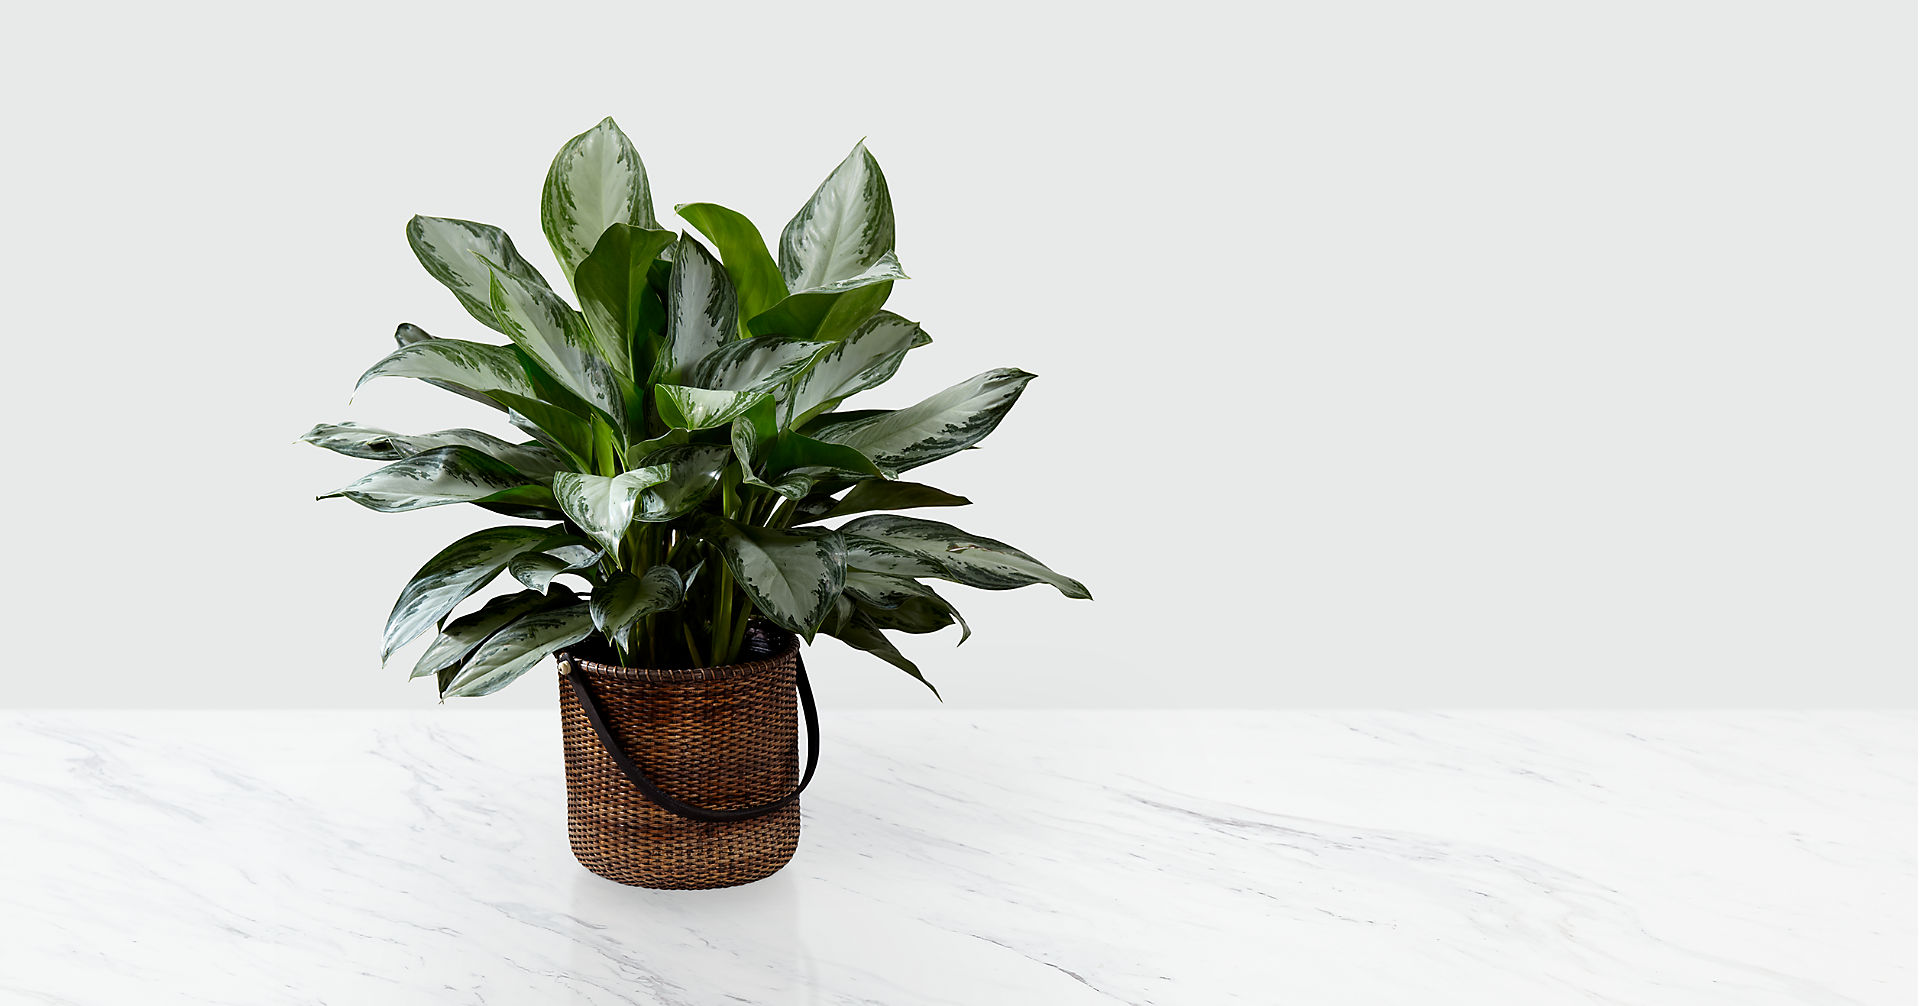 The Chinese Evergreen Plant - BASKET INCLUDED - Image 1 Of 2